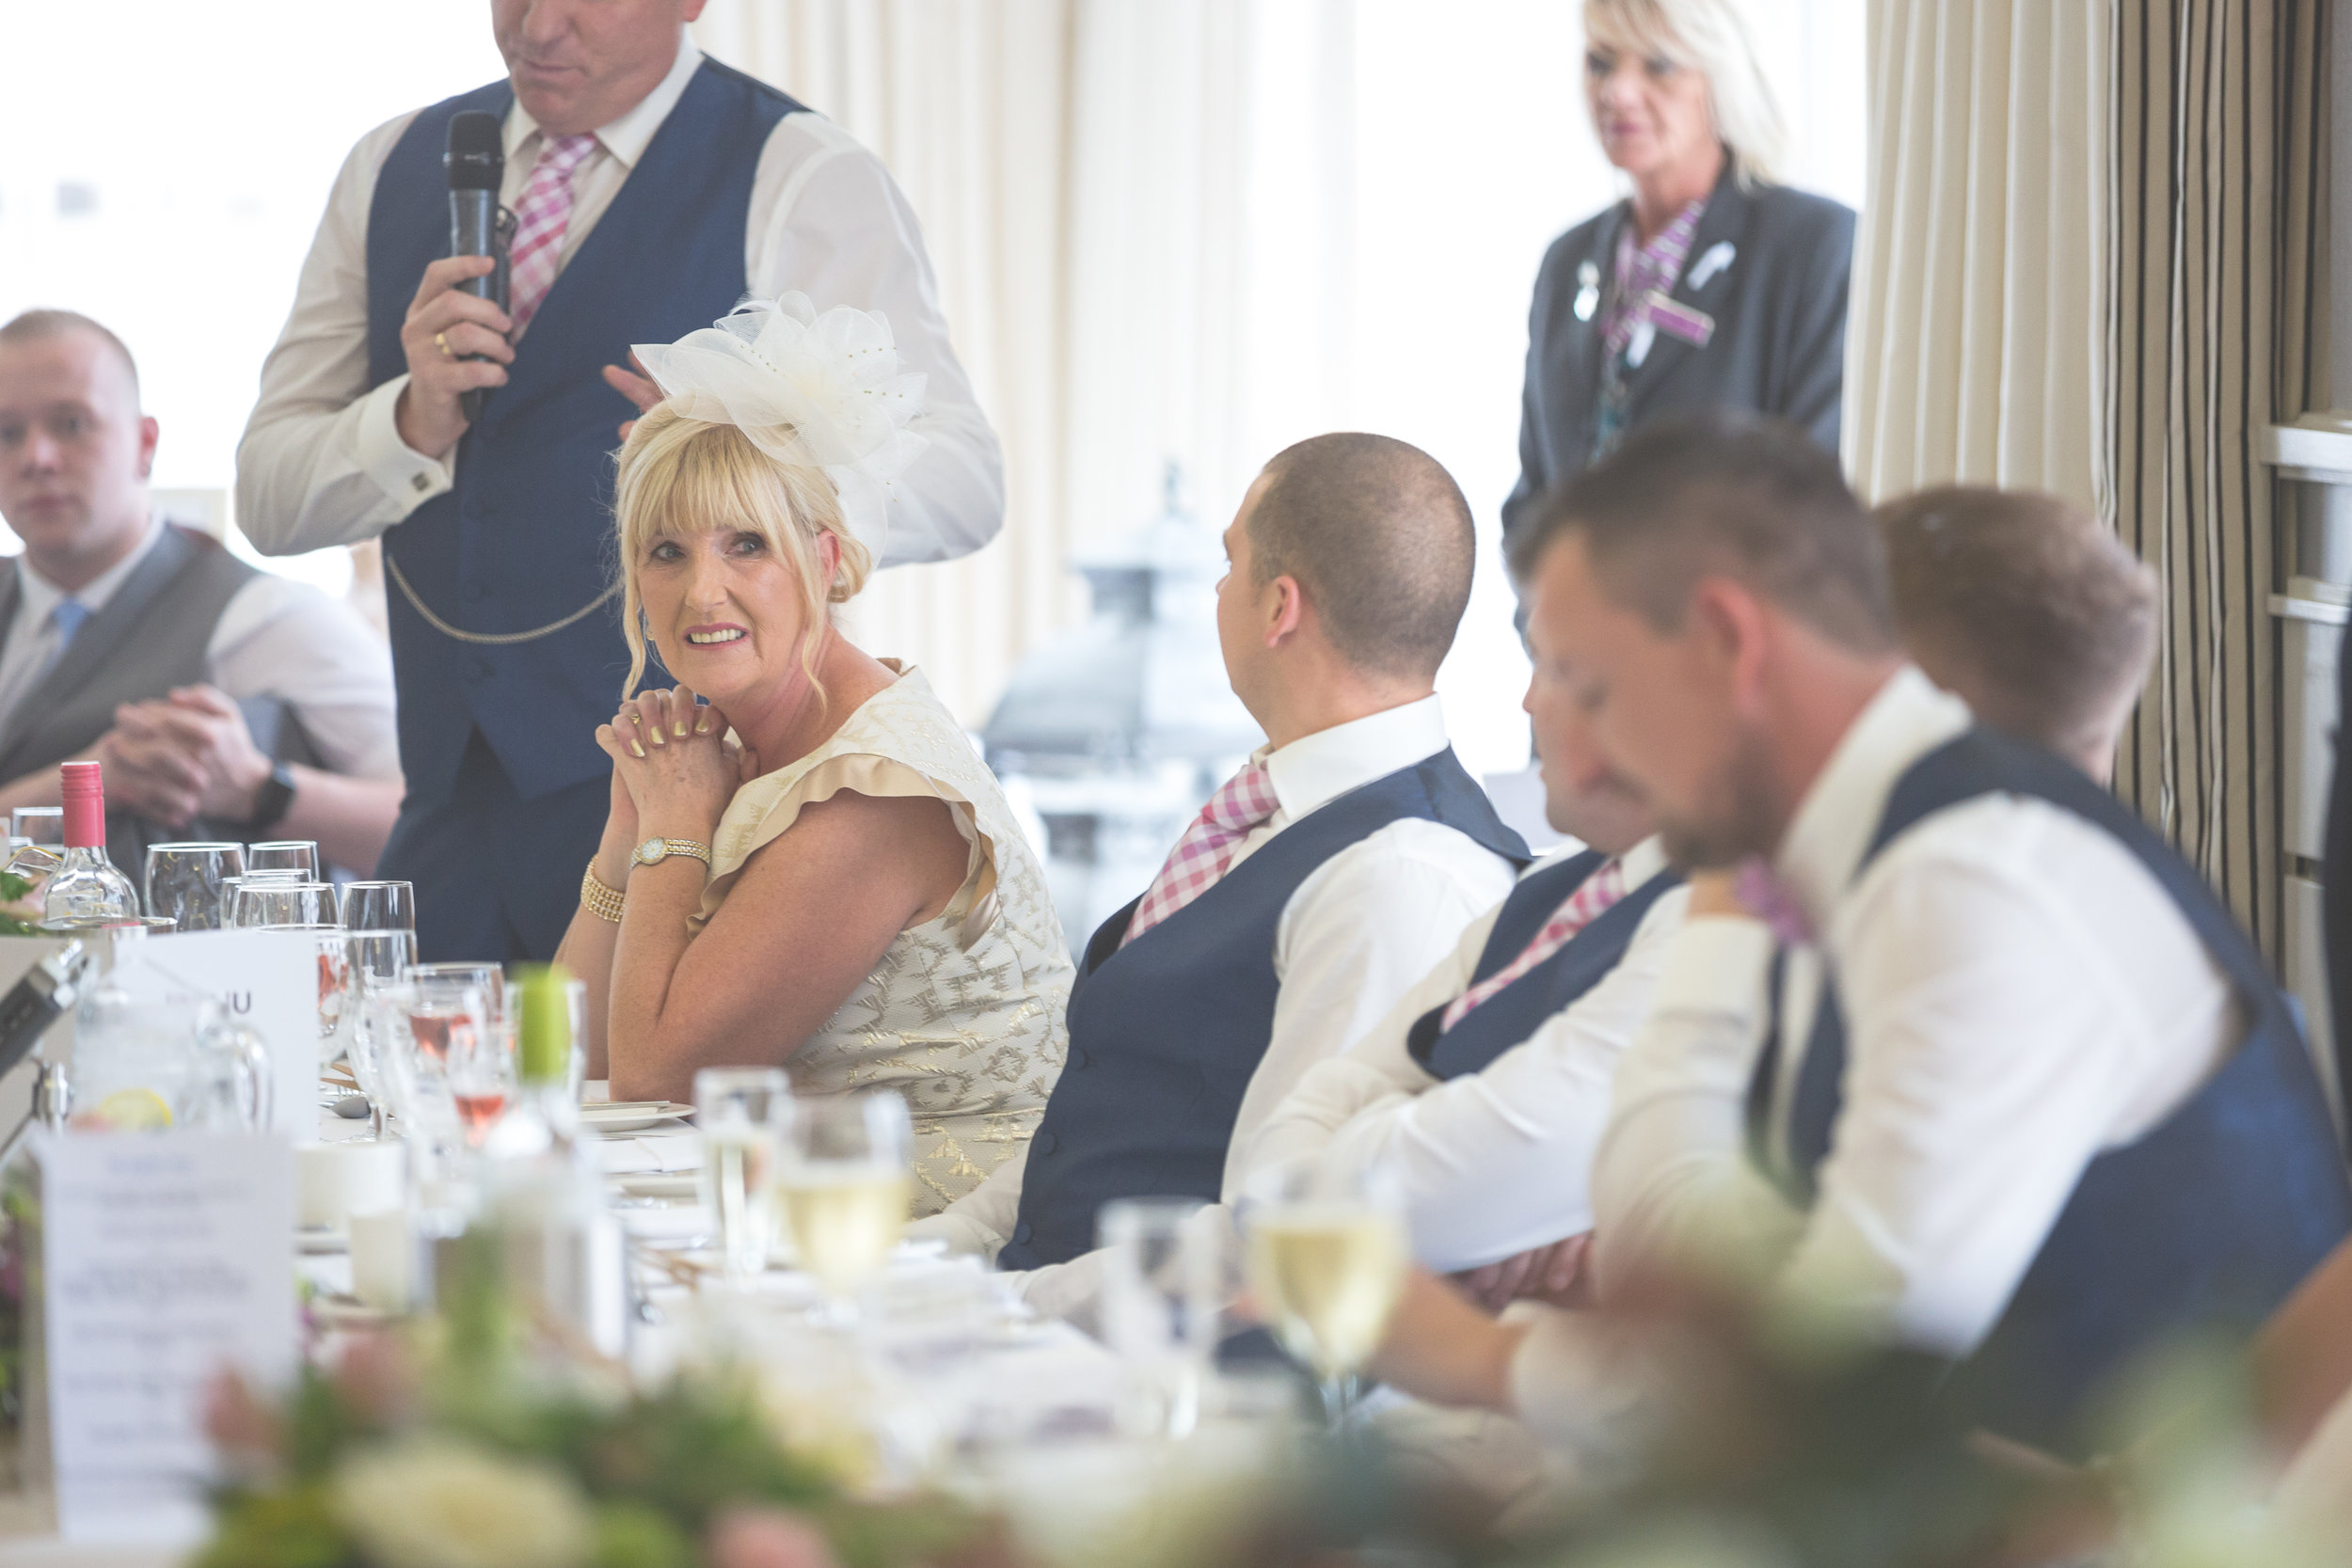 Antoinette & Stephen - Speeches | Brian McEwan Photography | Wedding Photographer Northern Ireland 43.jpg